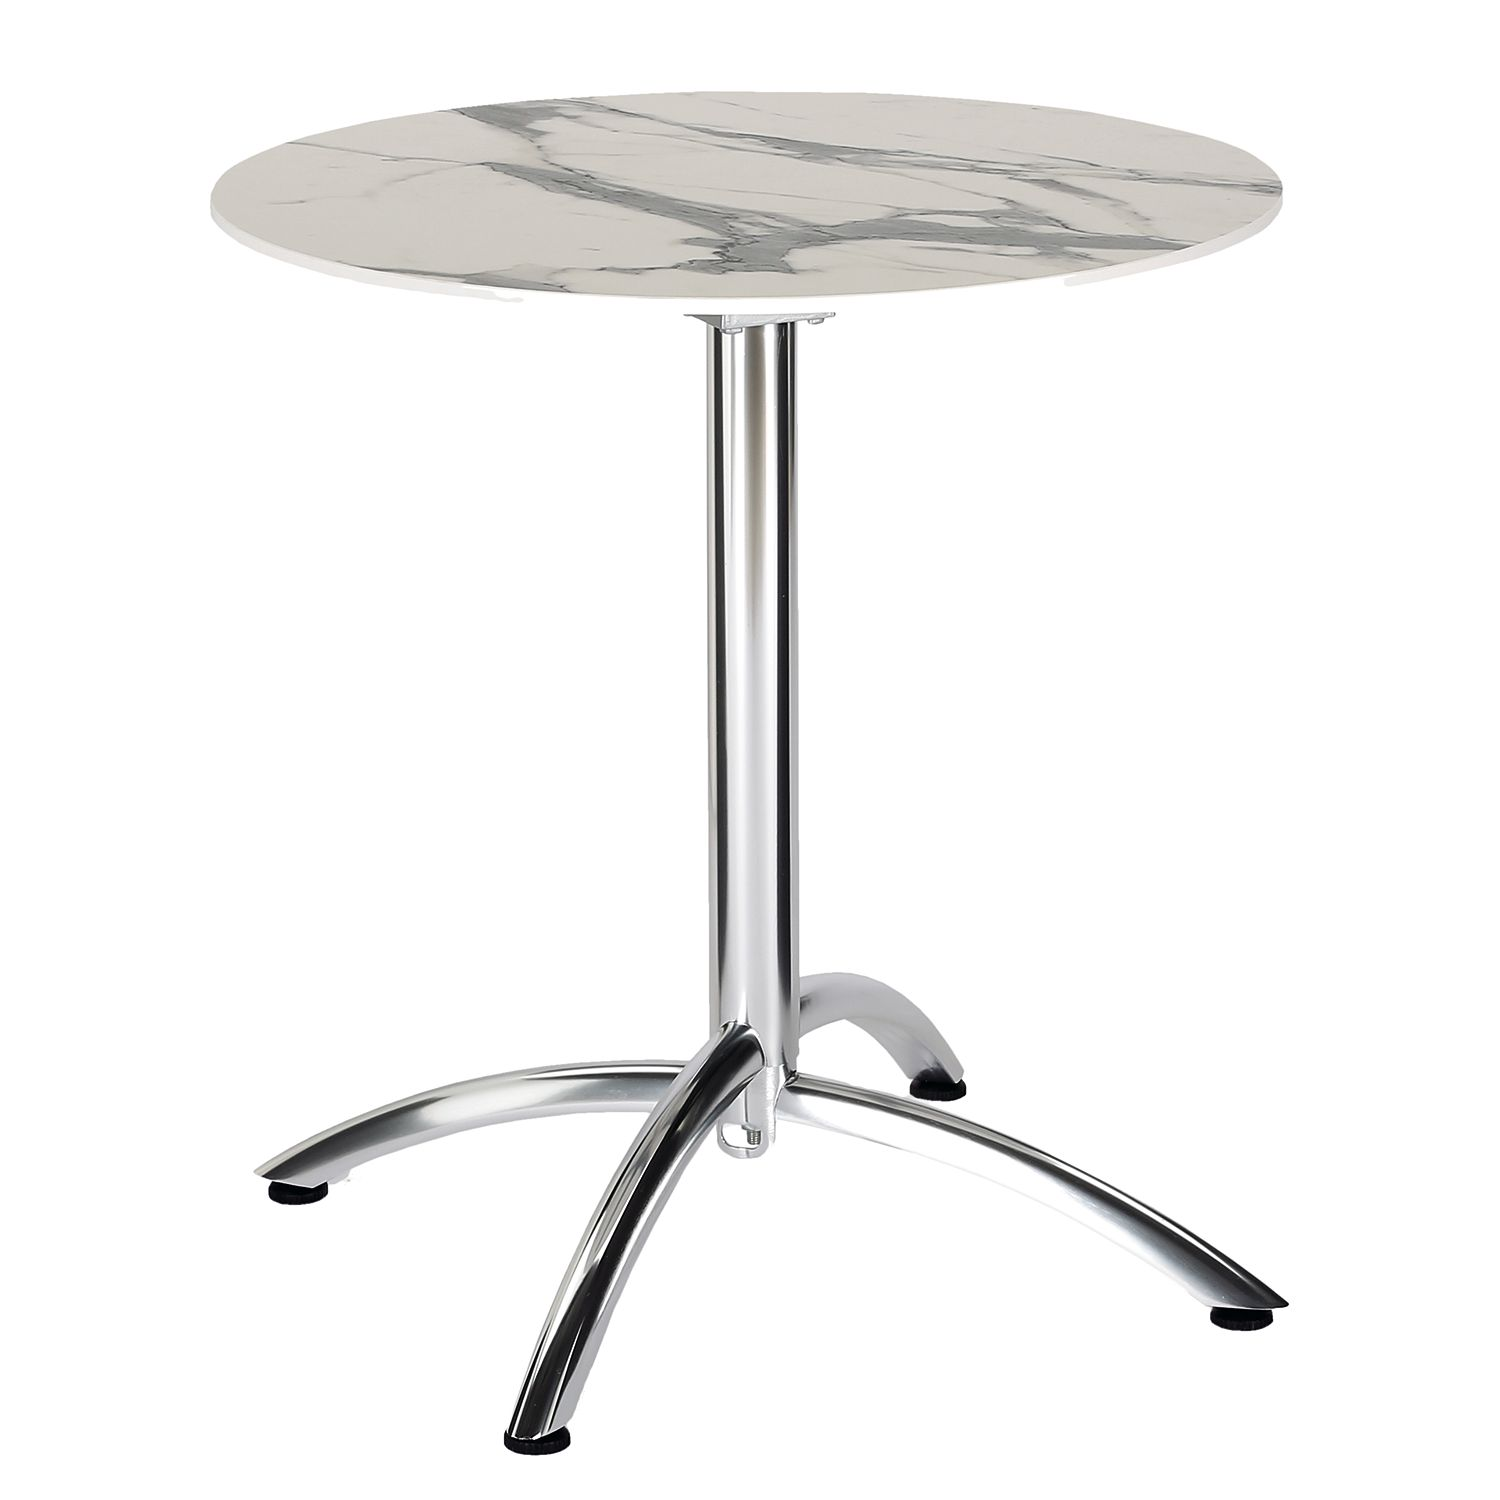 Table de jardin Firenze II - Aluminium - Imitation marbre blanc, Best Freizeitmöbel